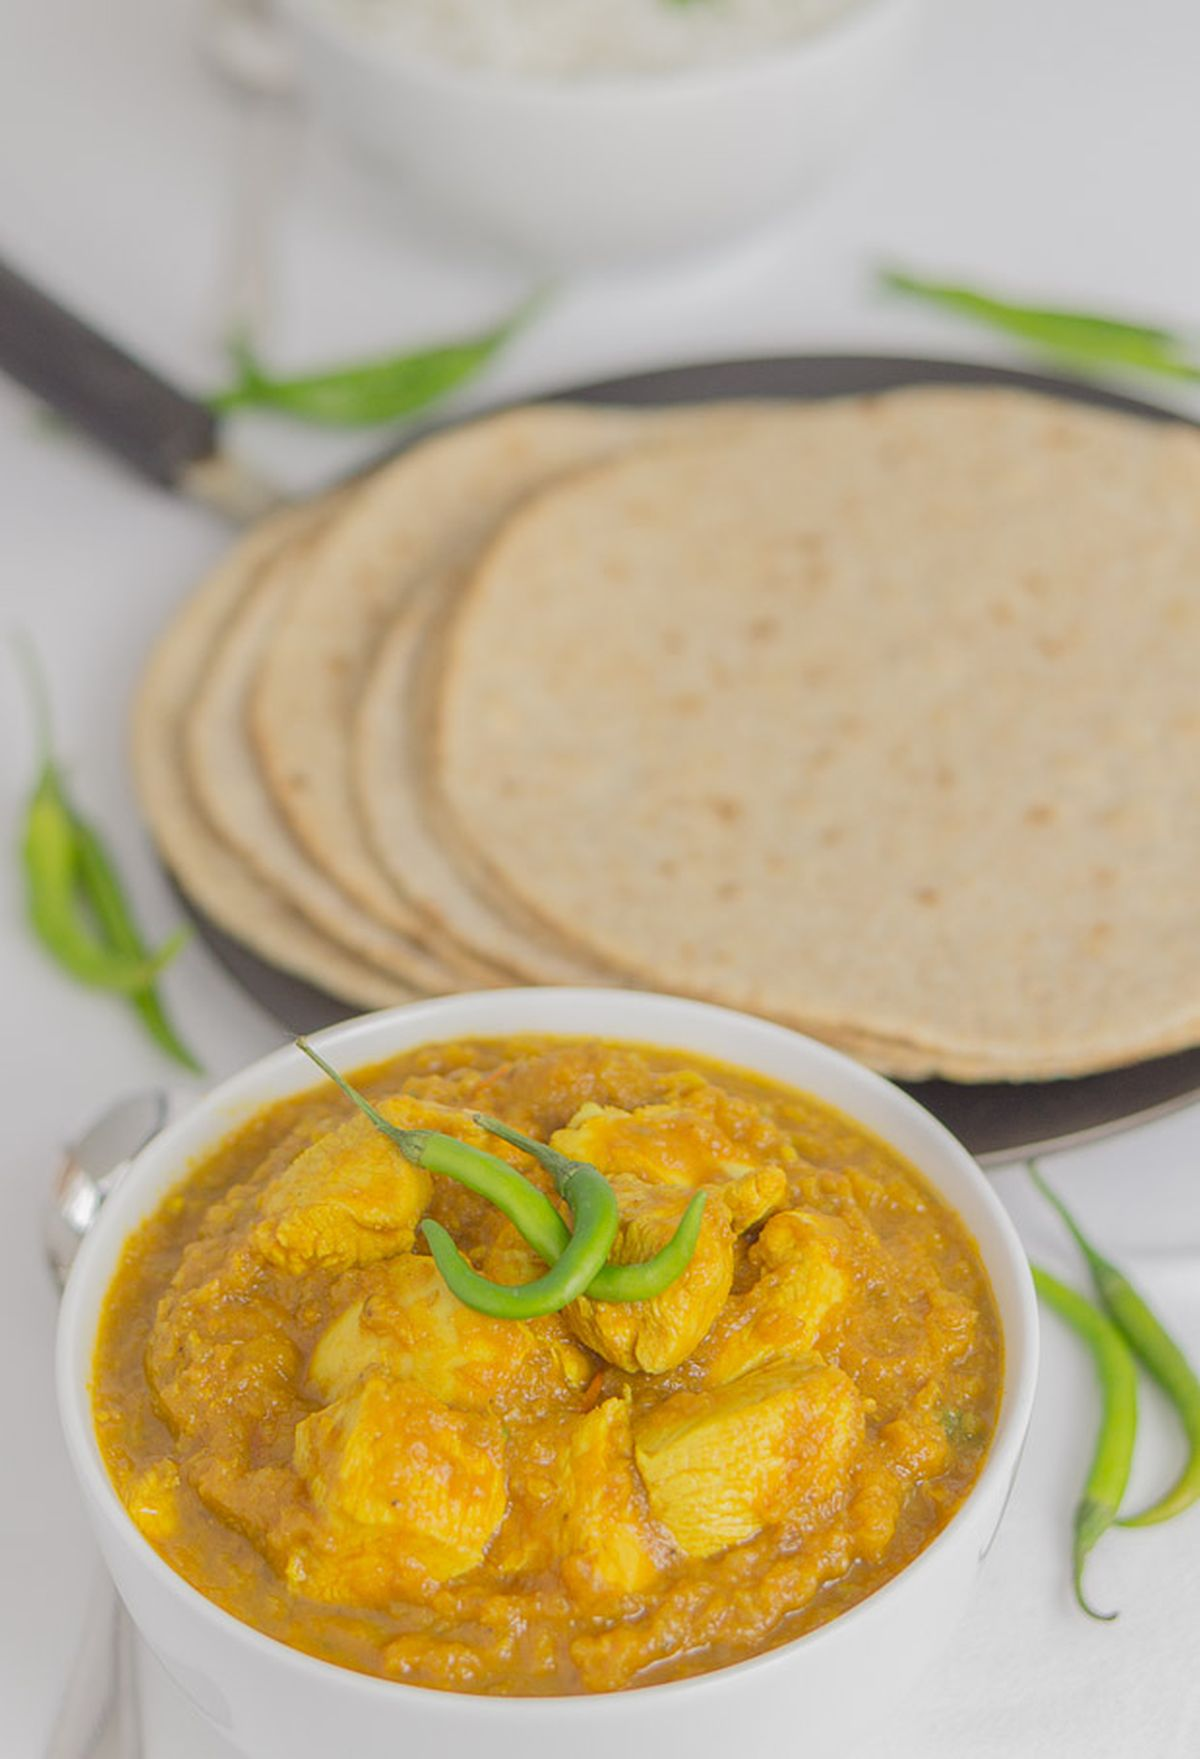 A bowl of green chilli chicken curry garnished with green chillies and some paratha breads on a tava in the background.